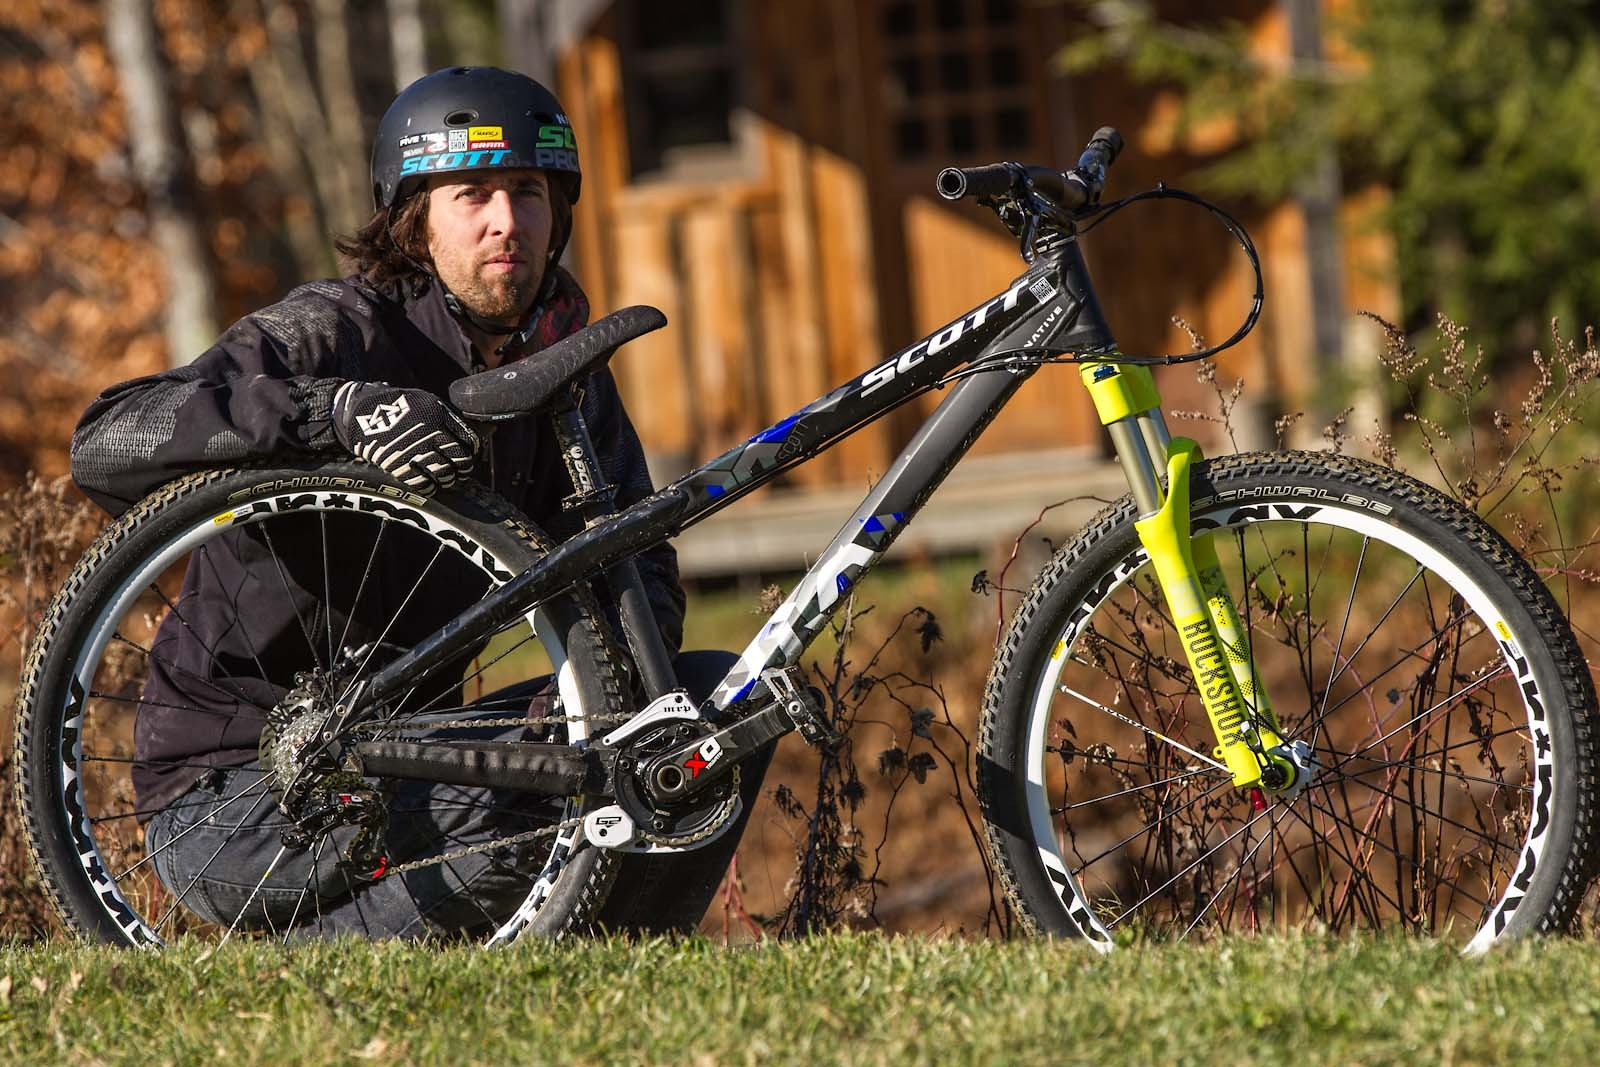 Kyle Ebbett shows off his Scott Voltage YZ TMO dirt jumper. Scroll through the photos and listen to the audio about this dialed hardtail.